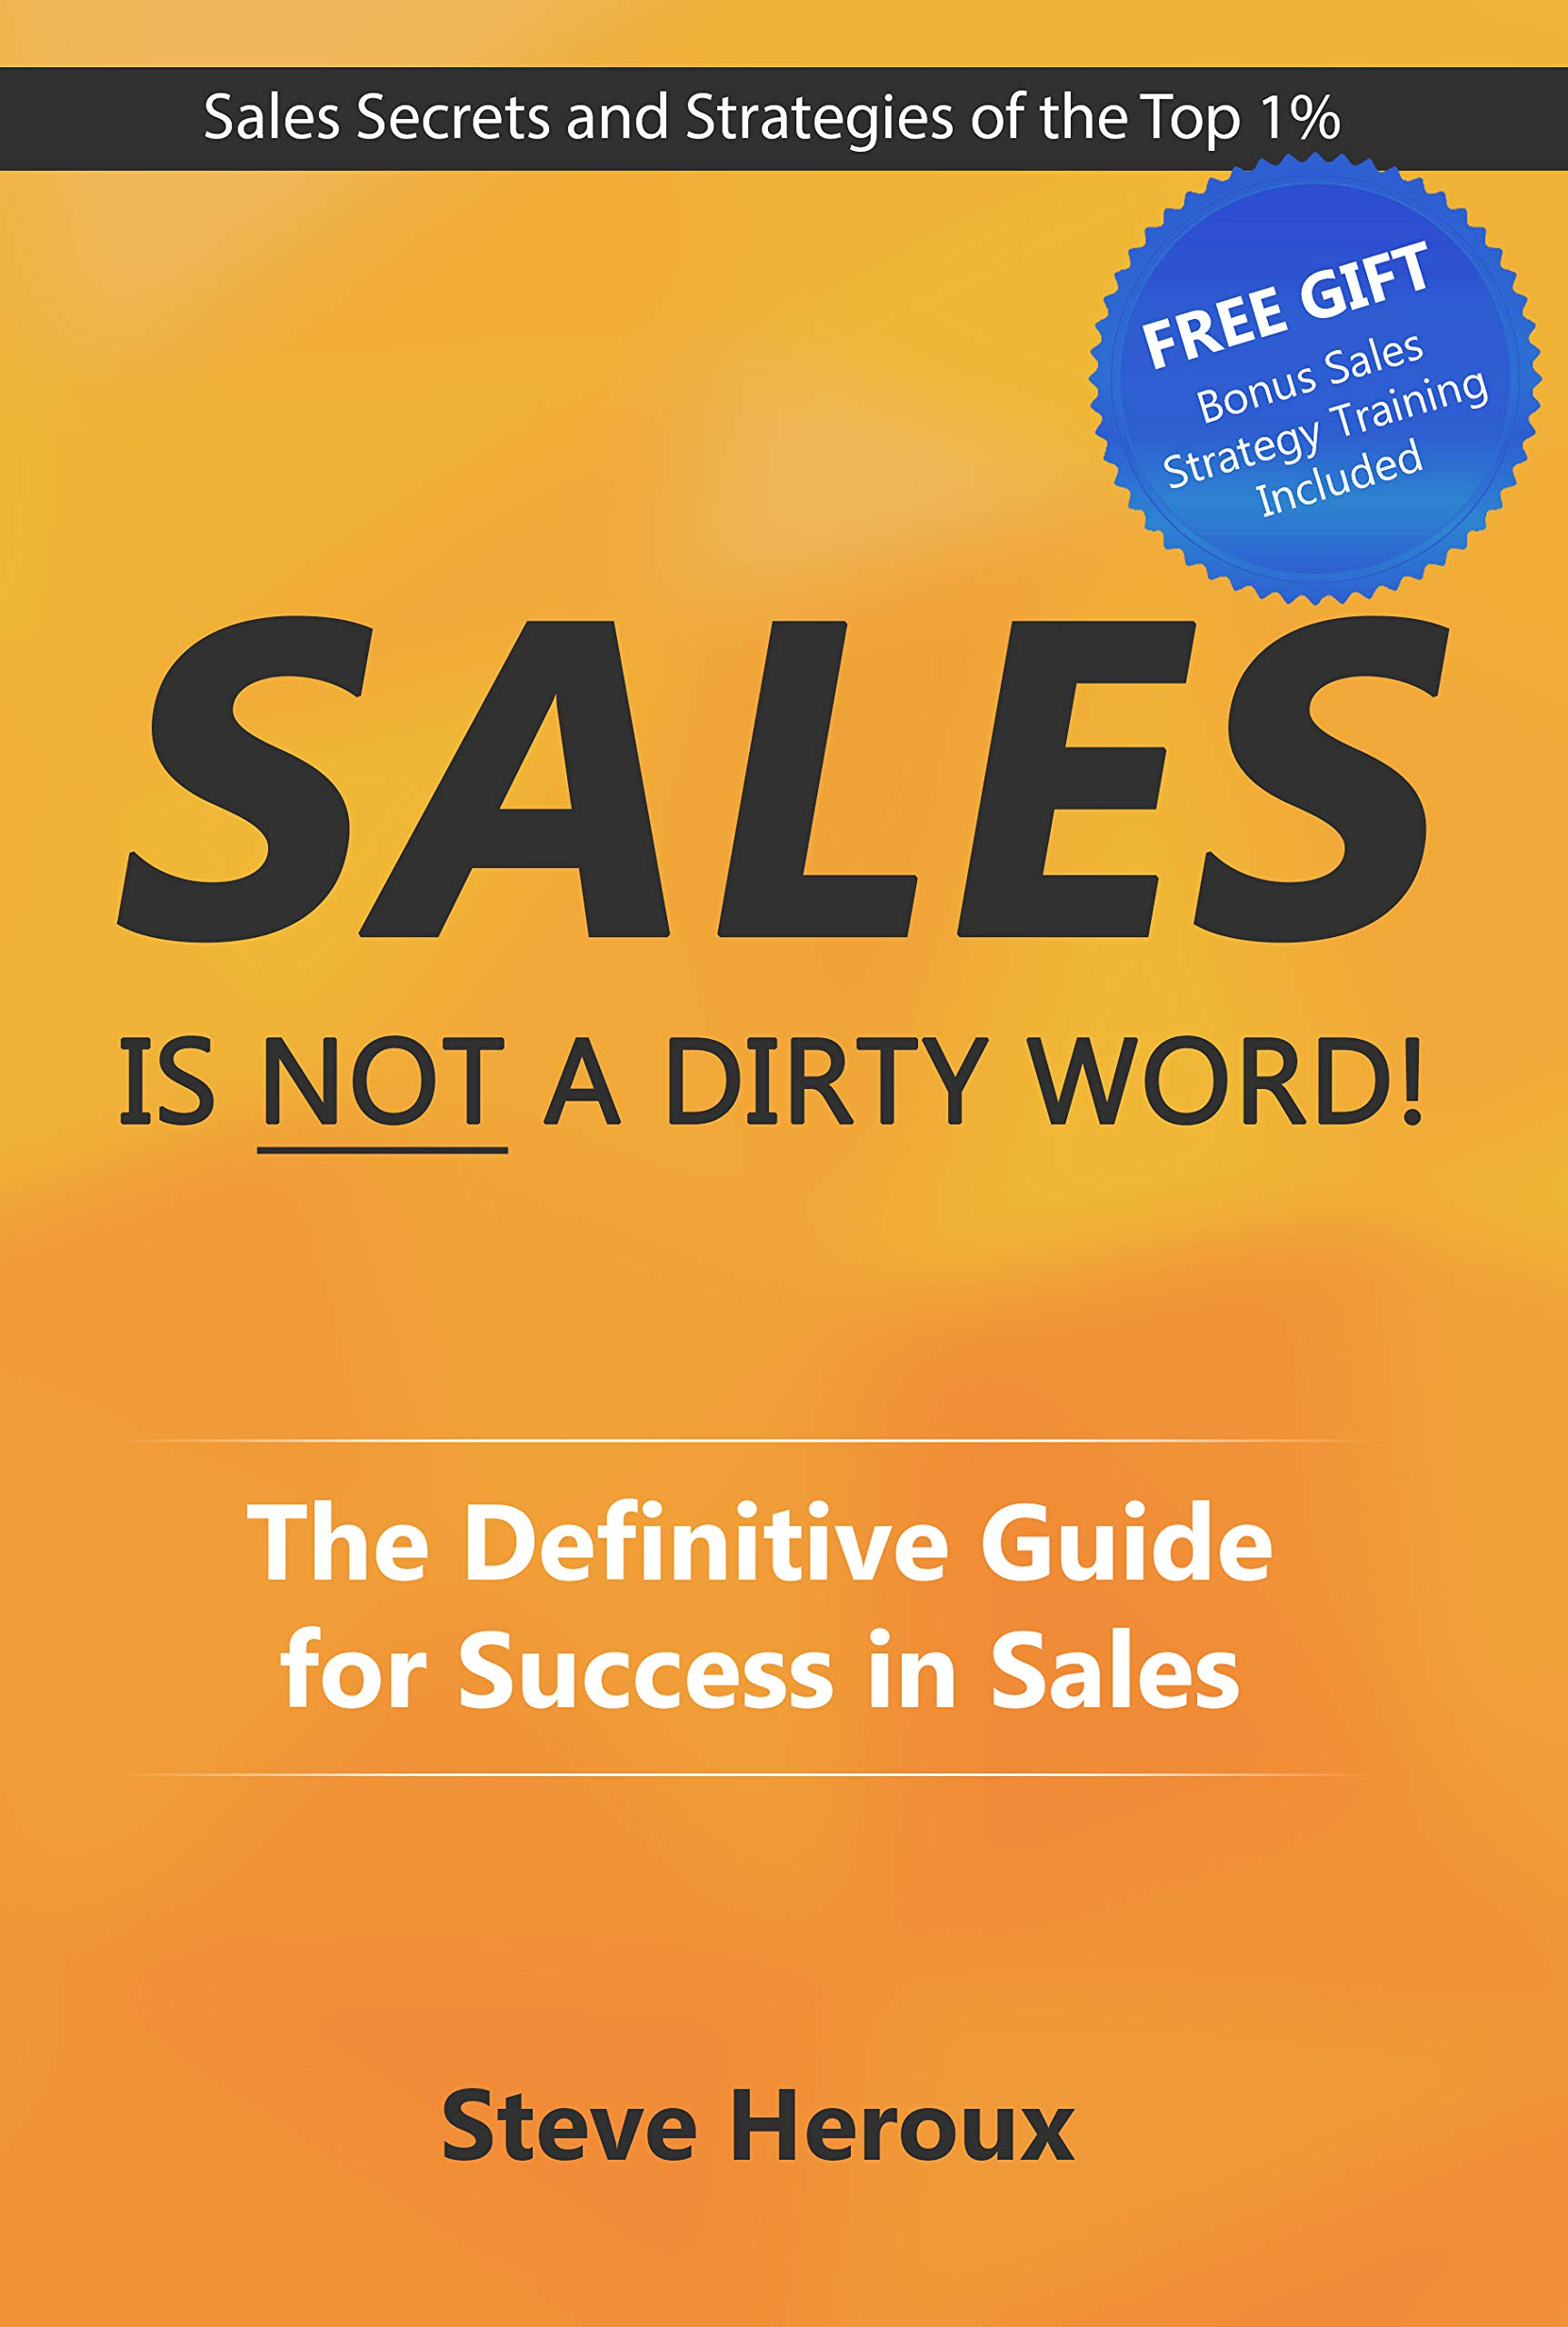 Sales Is Not A Dirty Word!: The Definitive Guide for Success in Sales